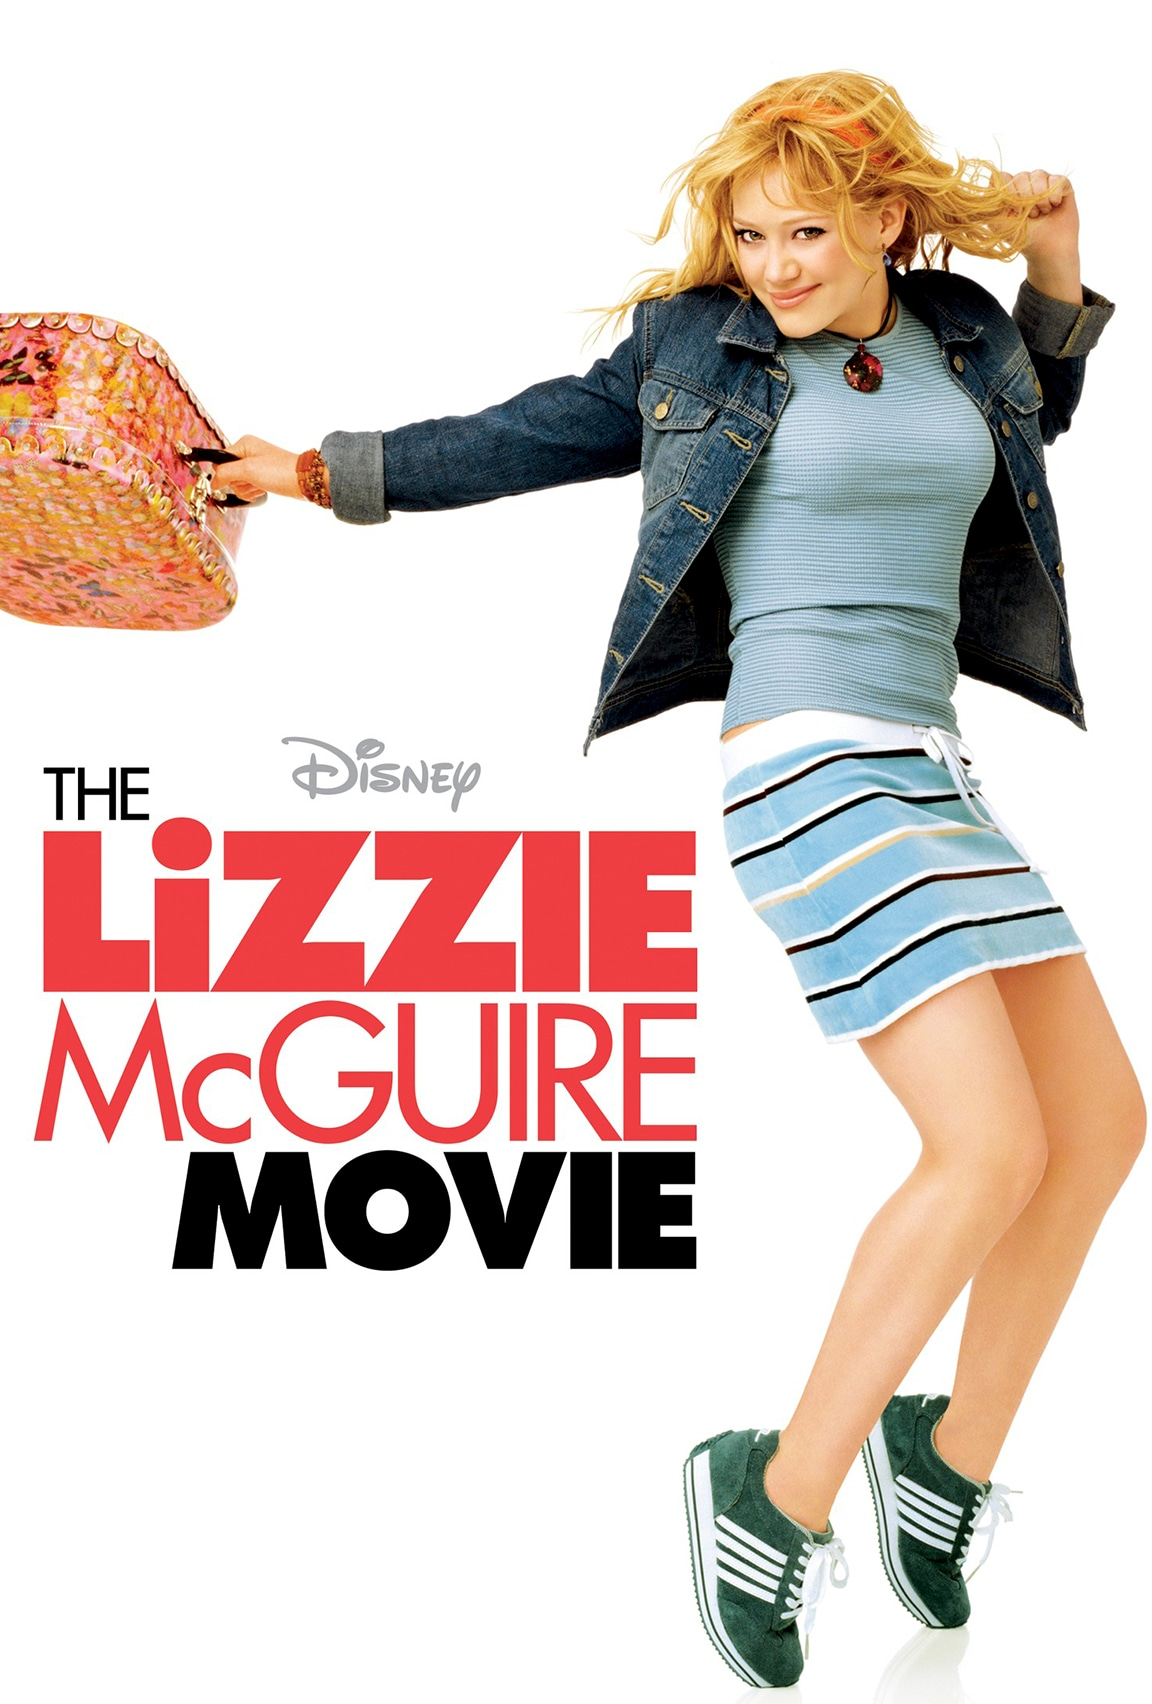 The Lizzie McGuire Movie on Disney Plus